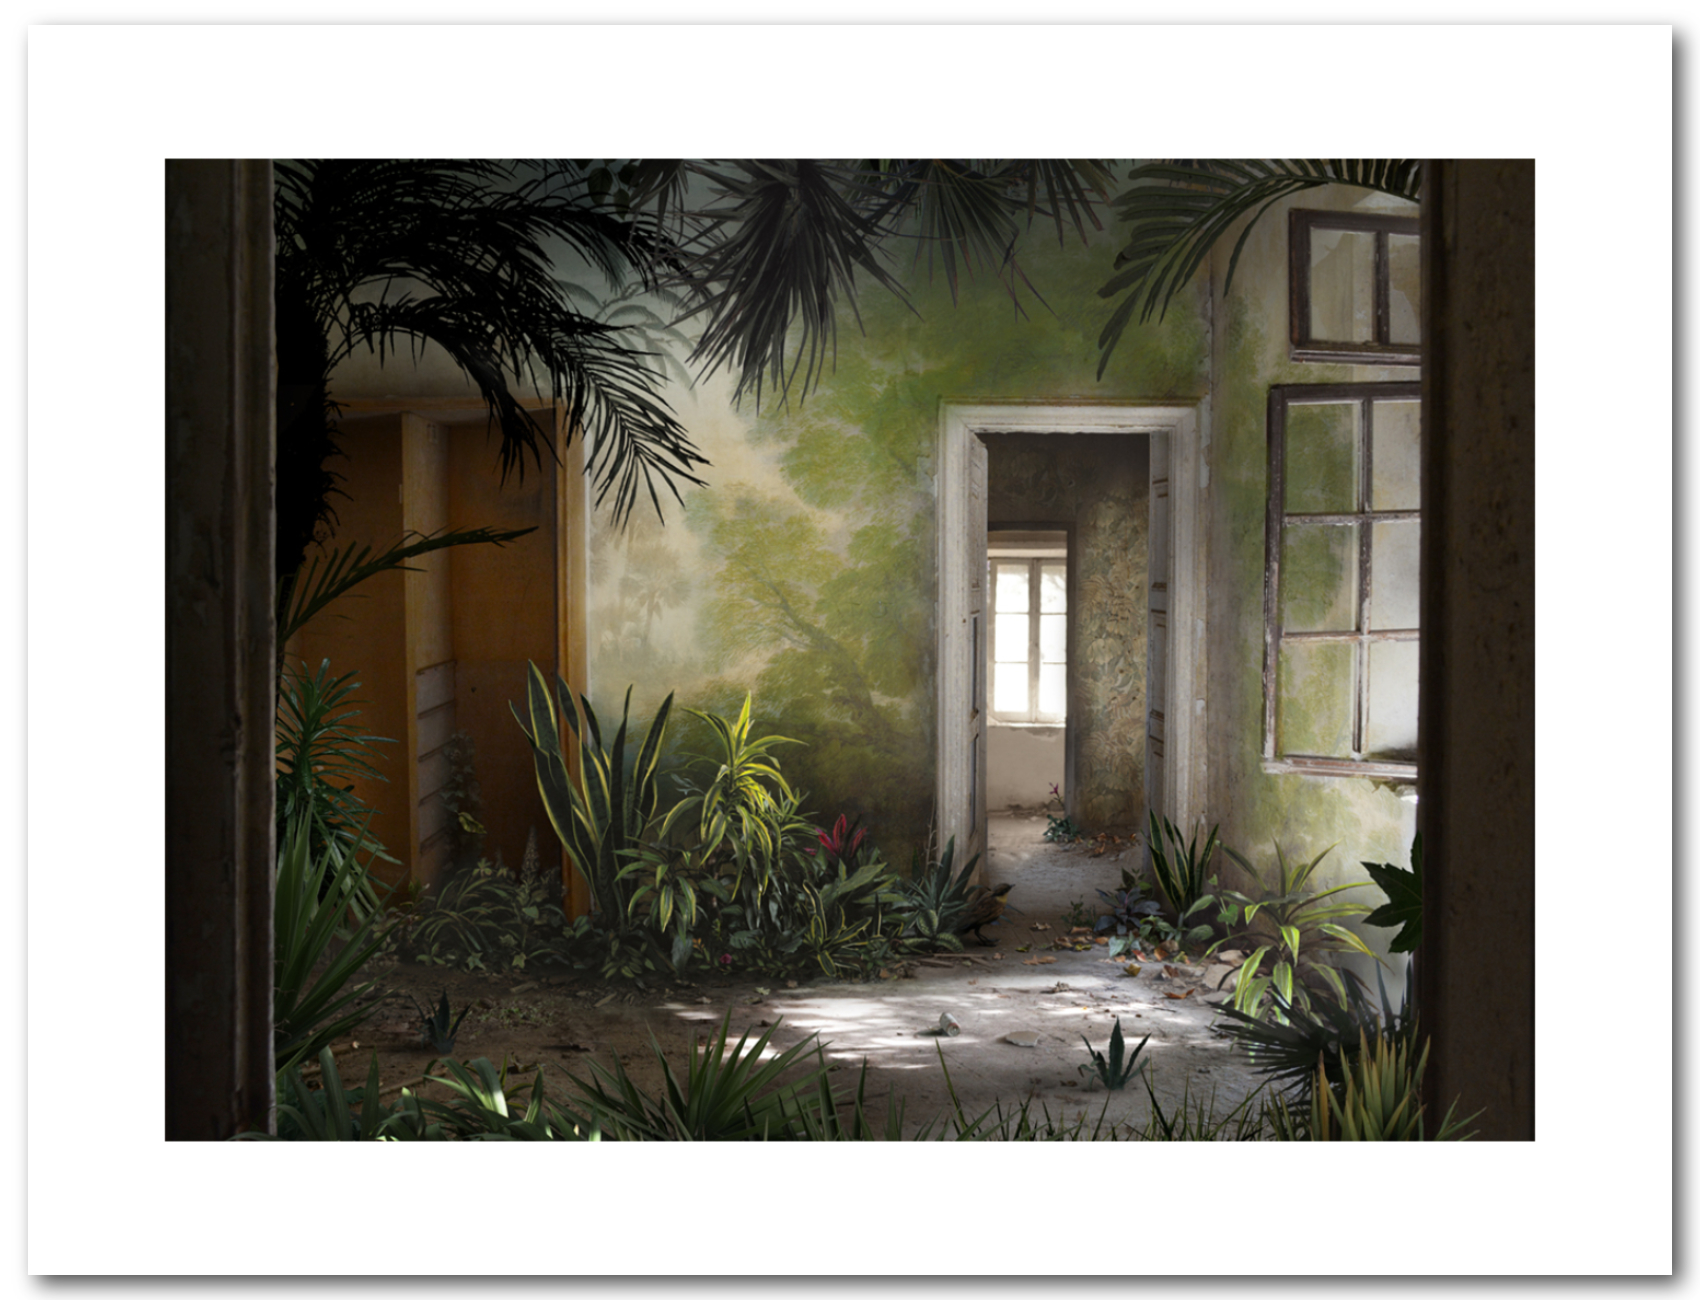 Hothouse - Suzanne Moxhay_1